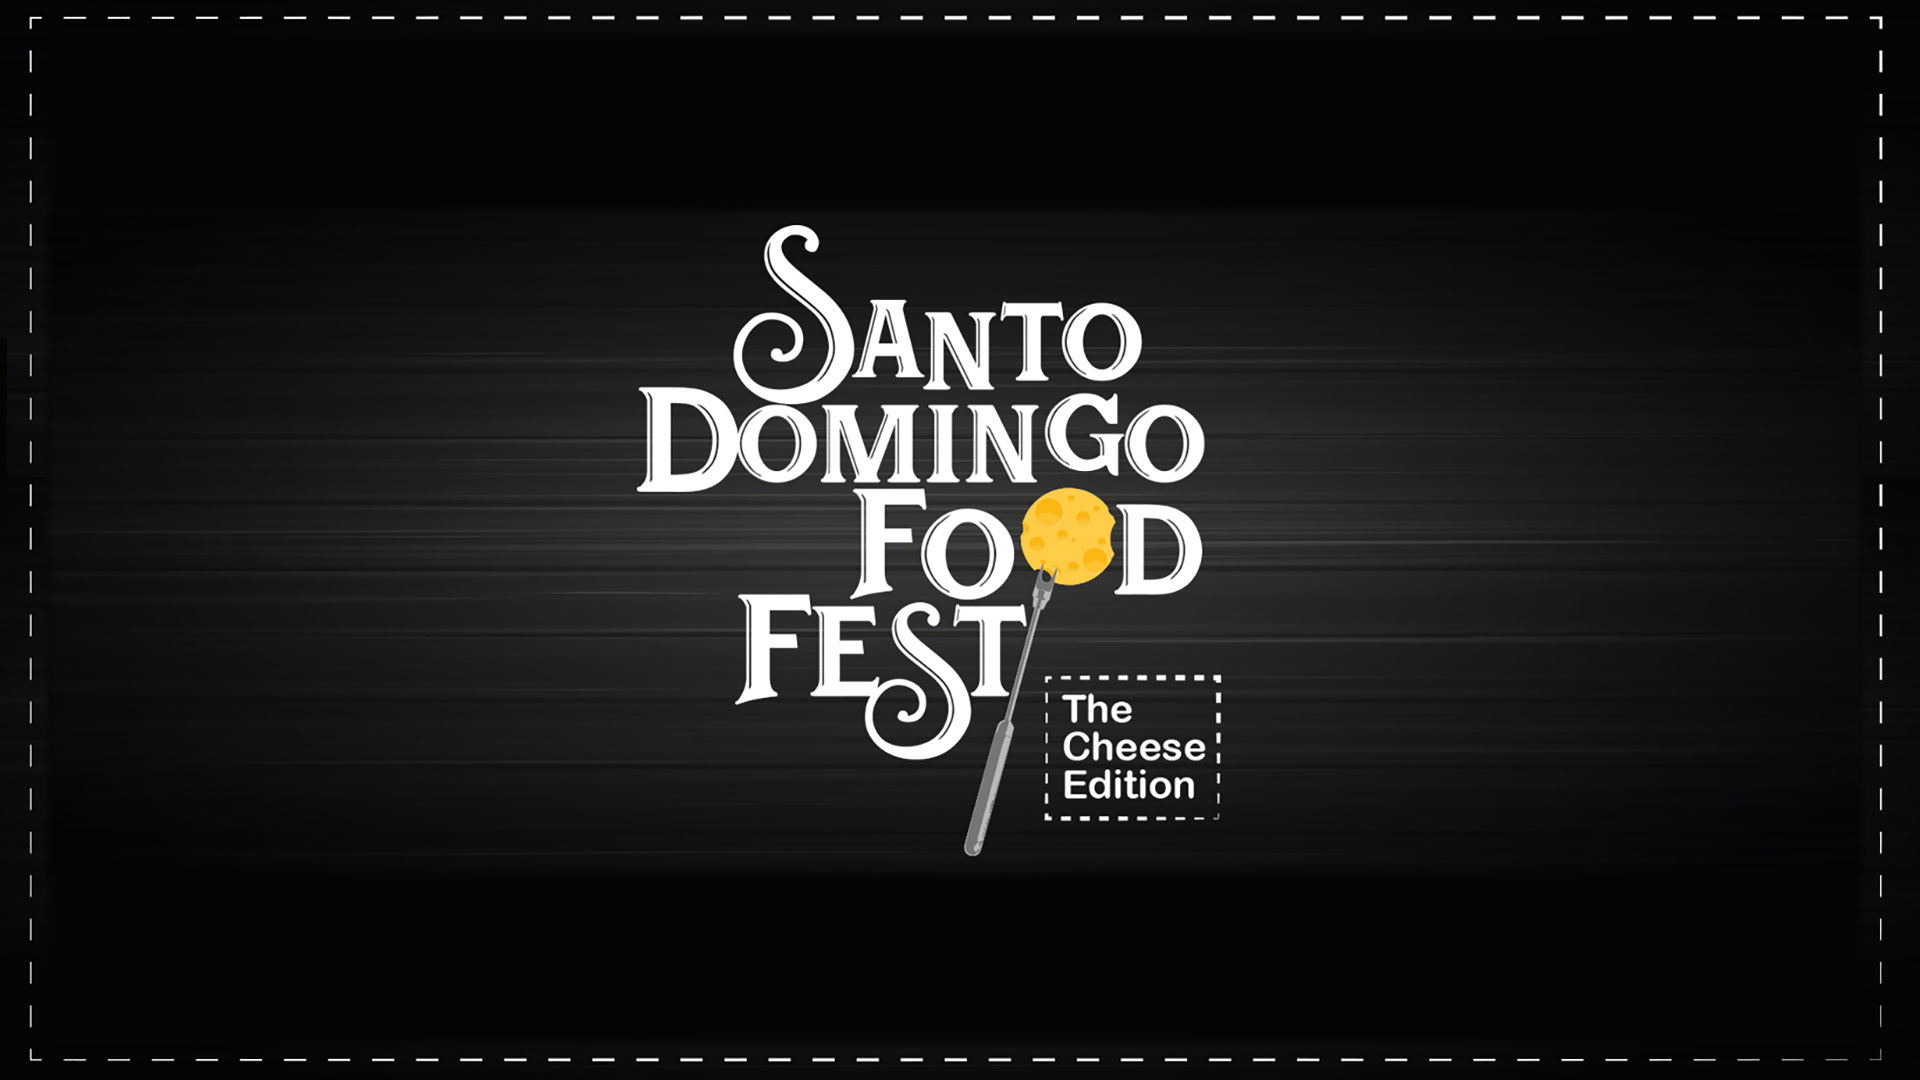 Santo Domingo Food Fest: The Cheese Edition